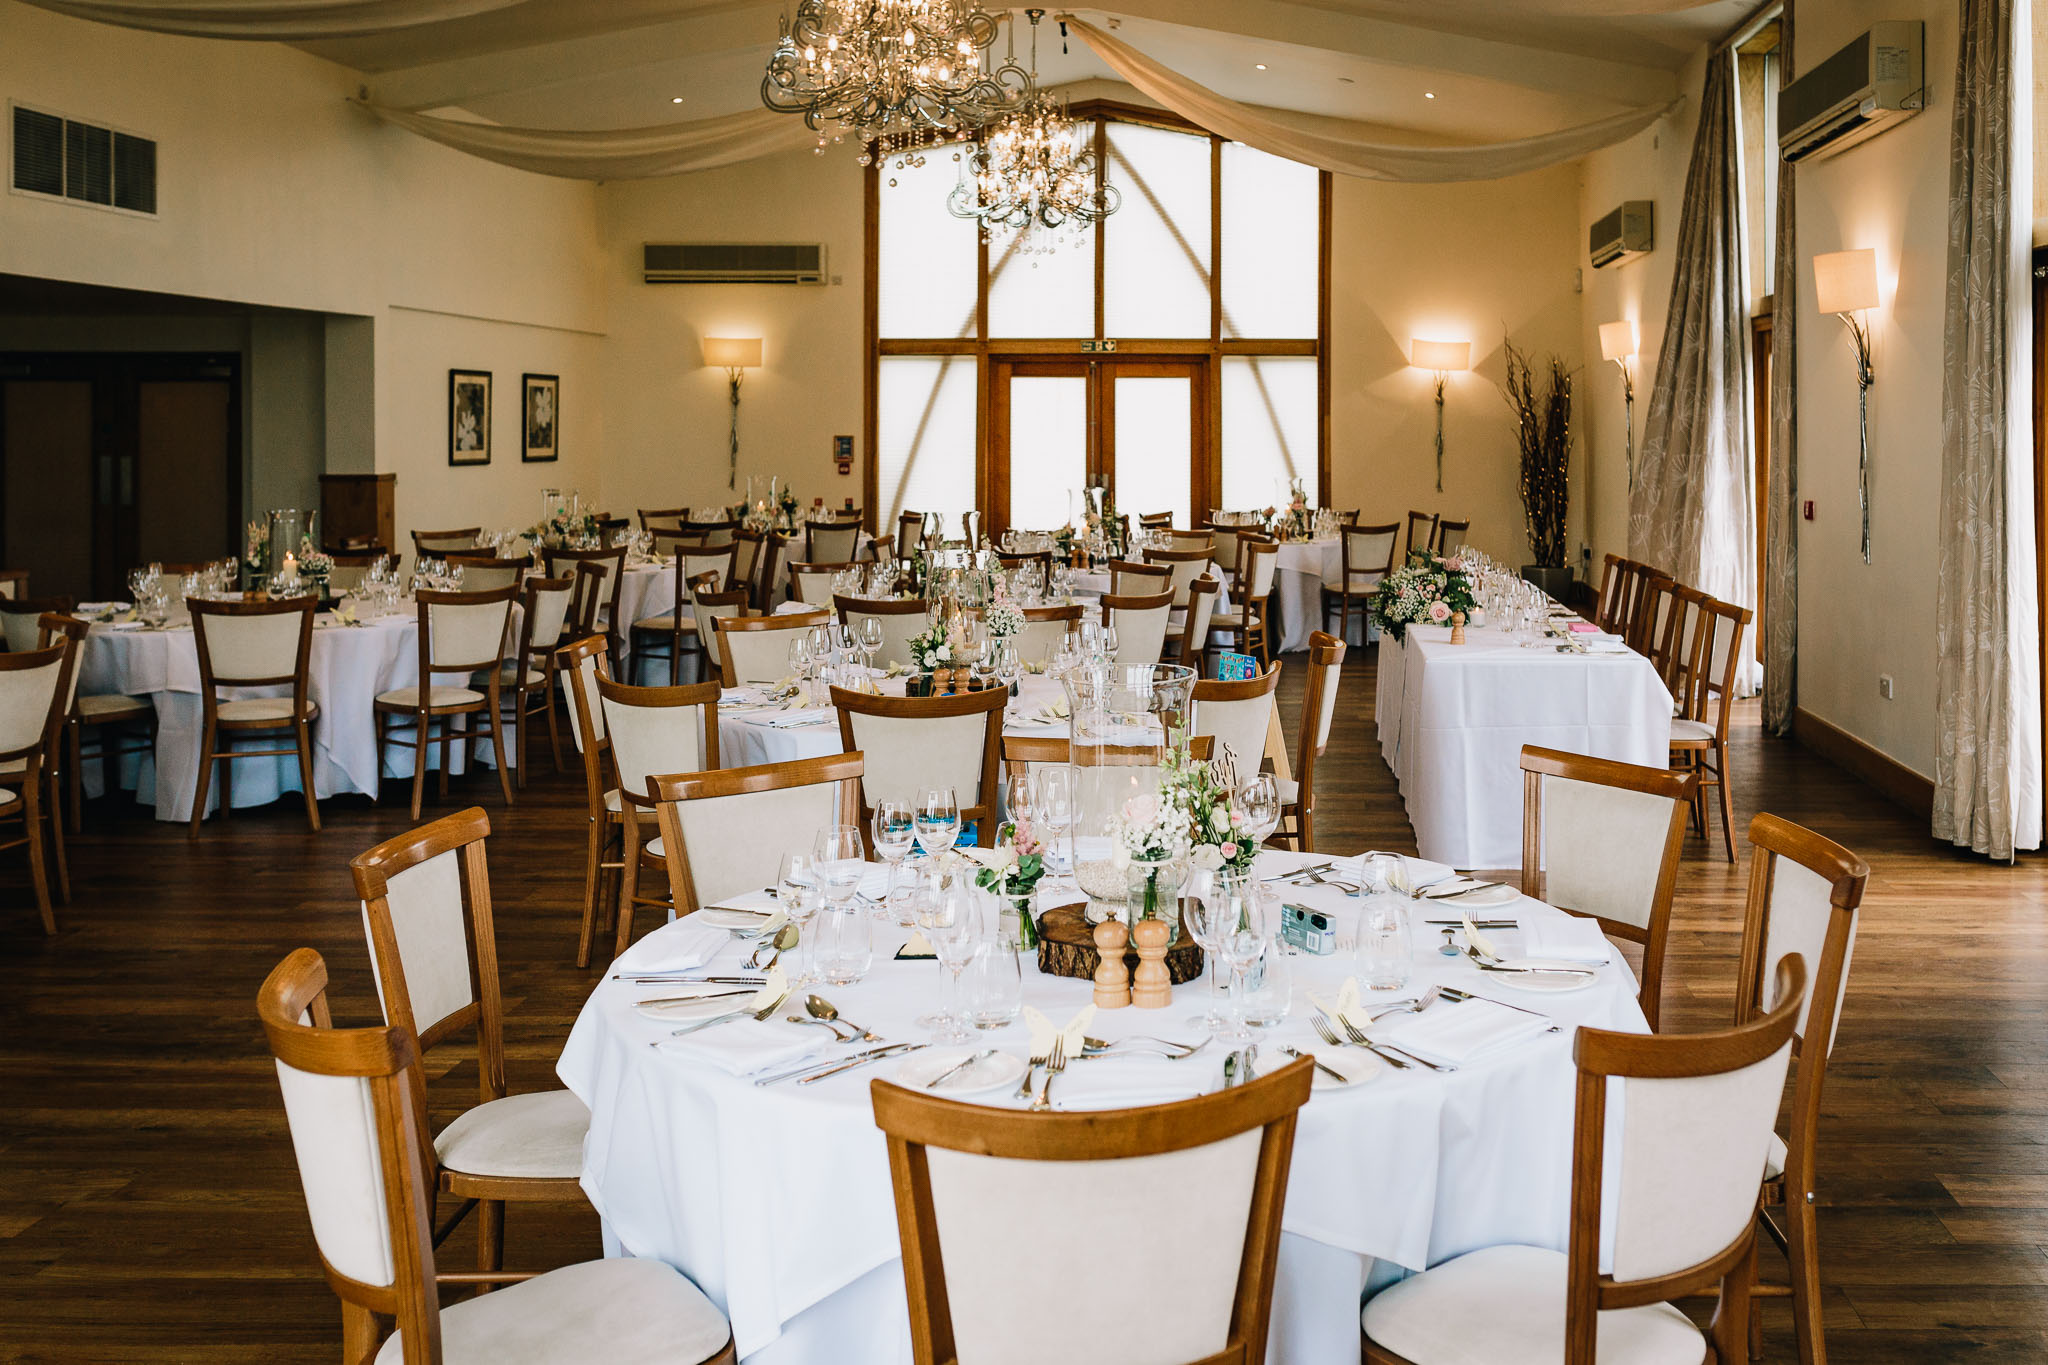 WEDDING RECEPTION VENUE STYLING AND DRESSING